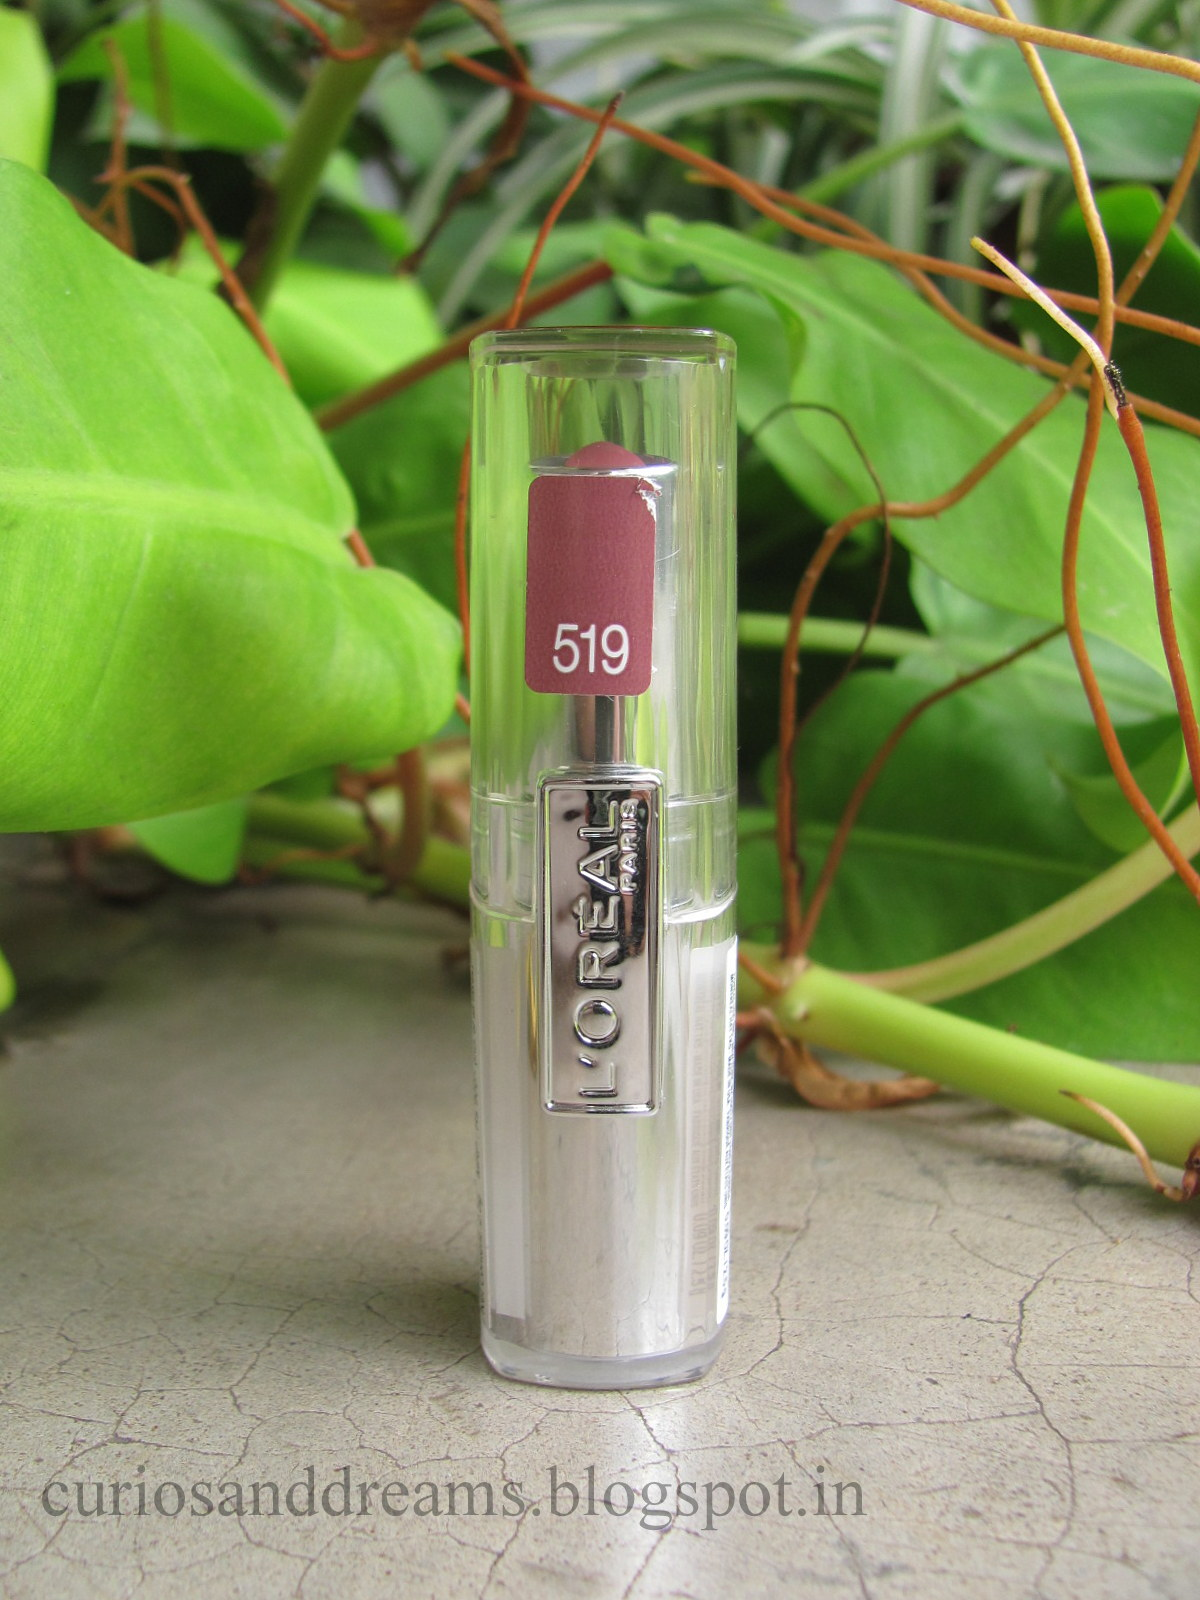 L'oreal Infallible Le Rouge Lipstick in Tender Berry, L'oreal Infallible Le Rouge Lipstick, L'oreal Infallible Lipstick in Tender Berry, L'oreal Infallible Tender Berry, L'oreal Infallible Lipsticks